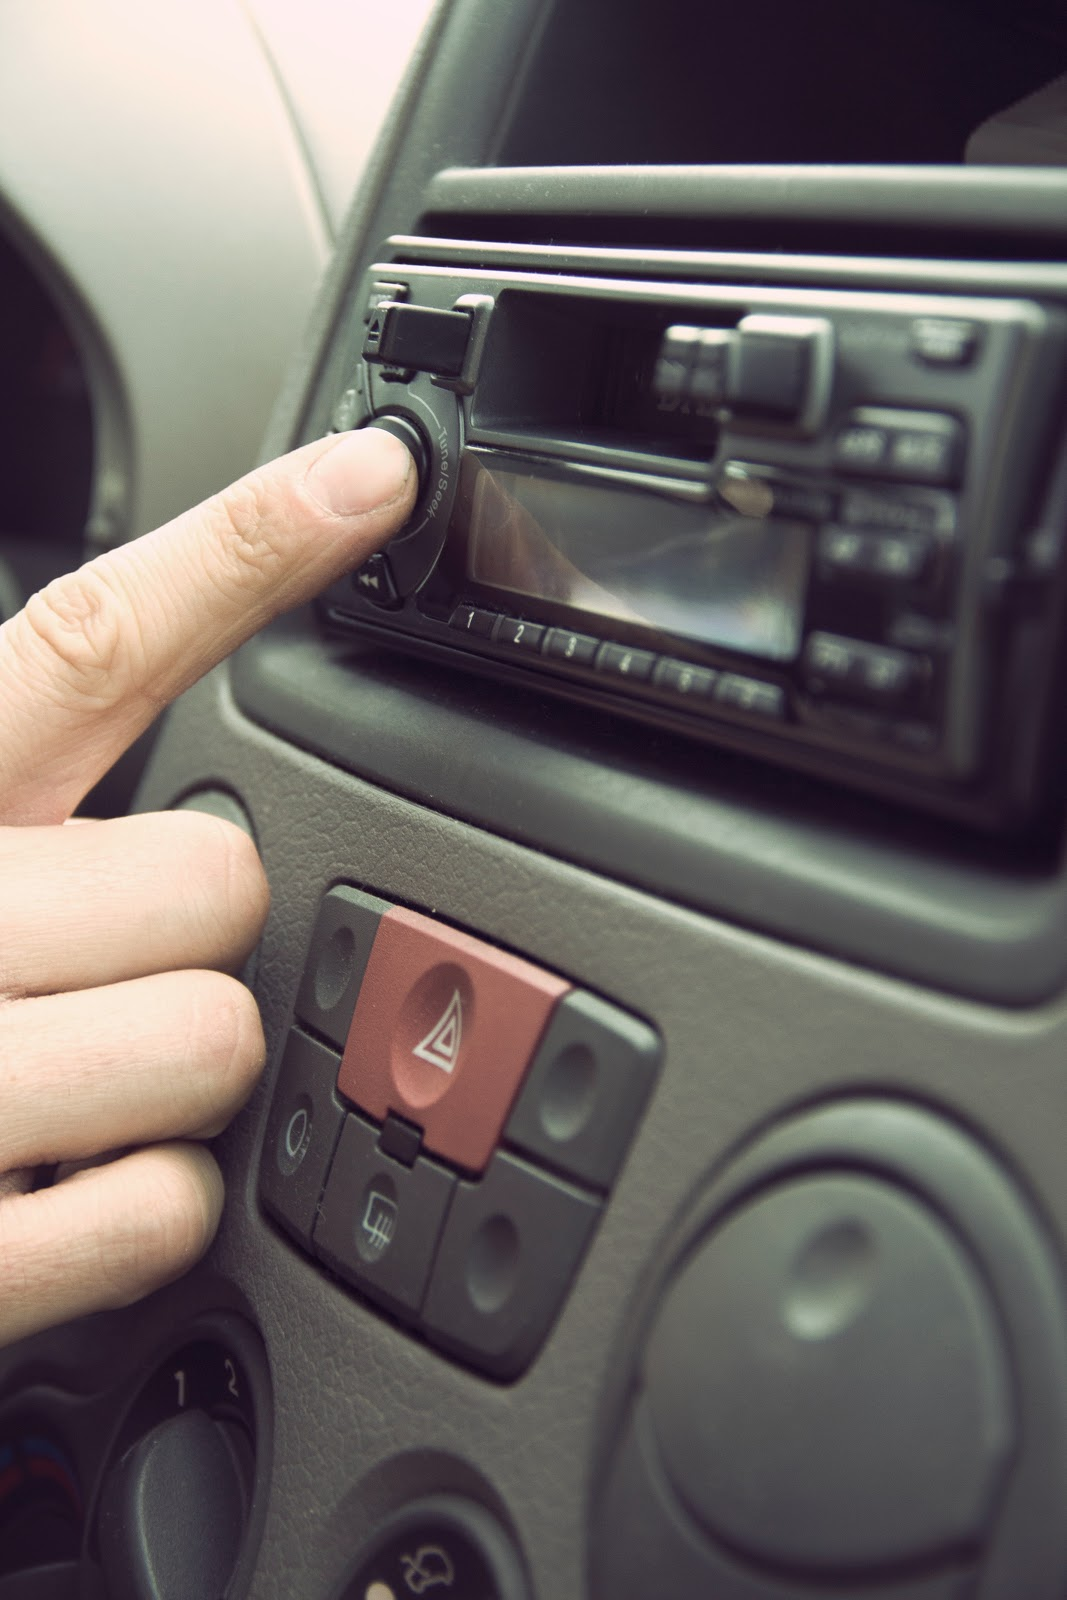 A close up of a driver's hand reaching towards an in-car stereo featuring a cassette player.